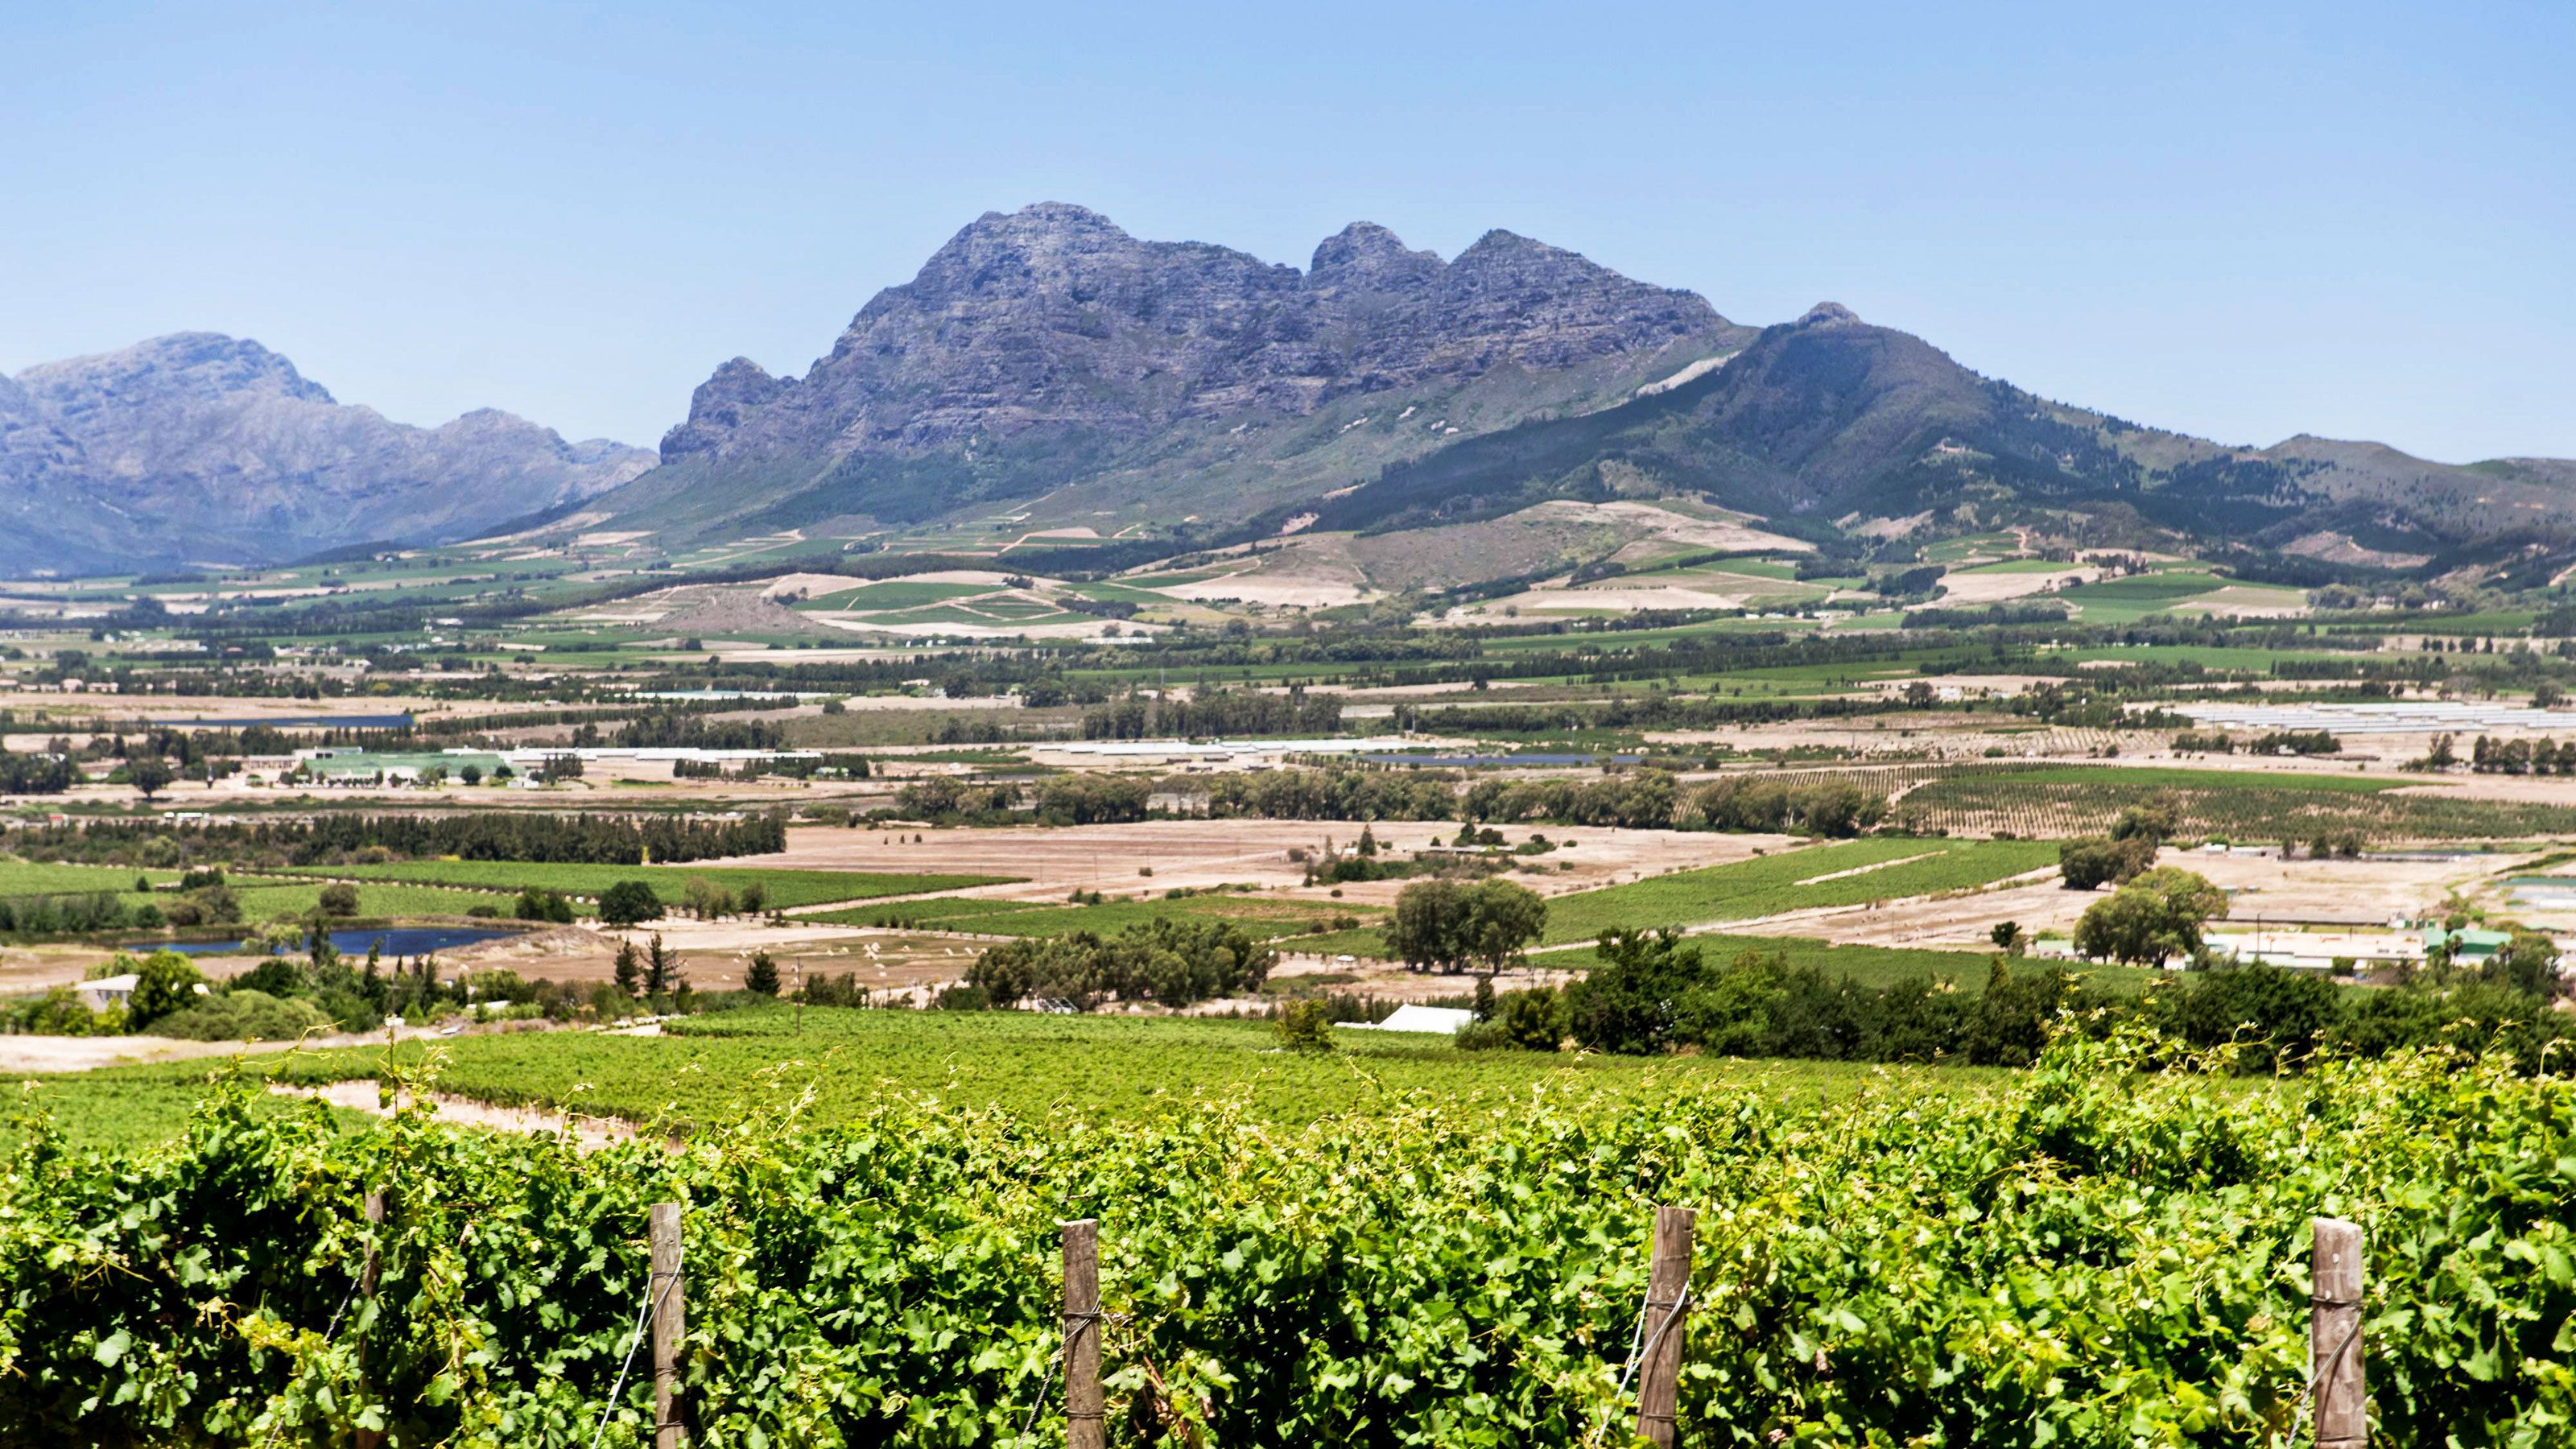 View of vineyards in Cape Town